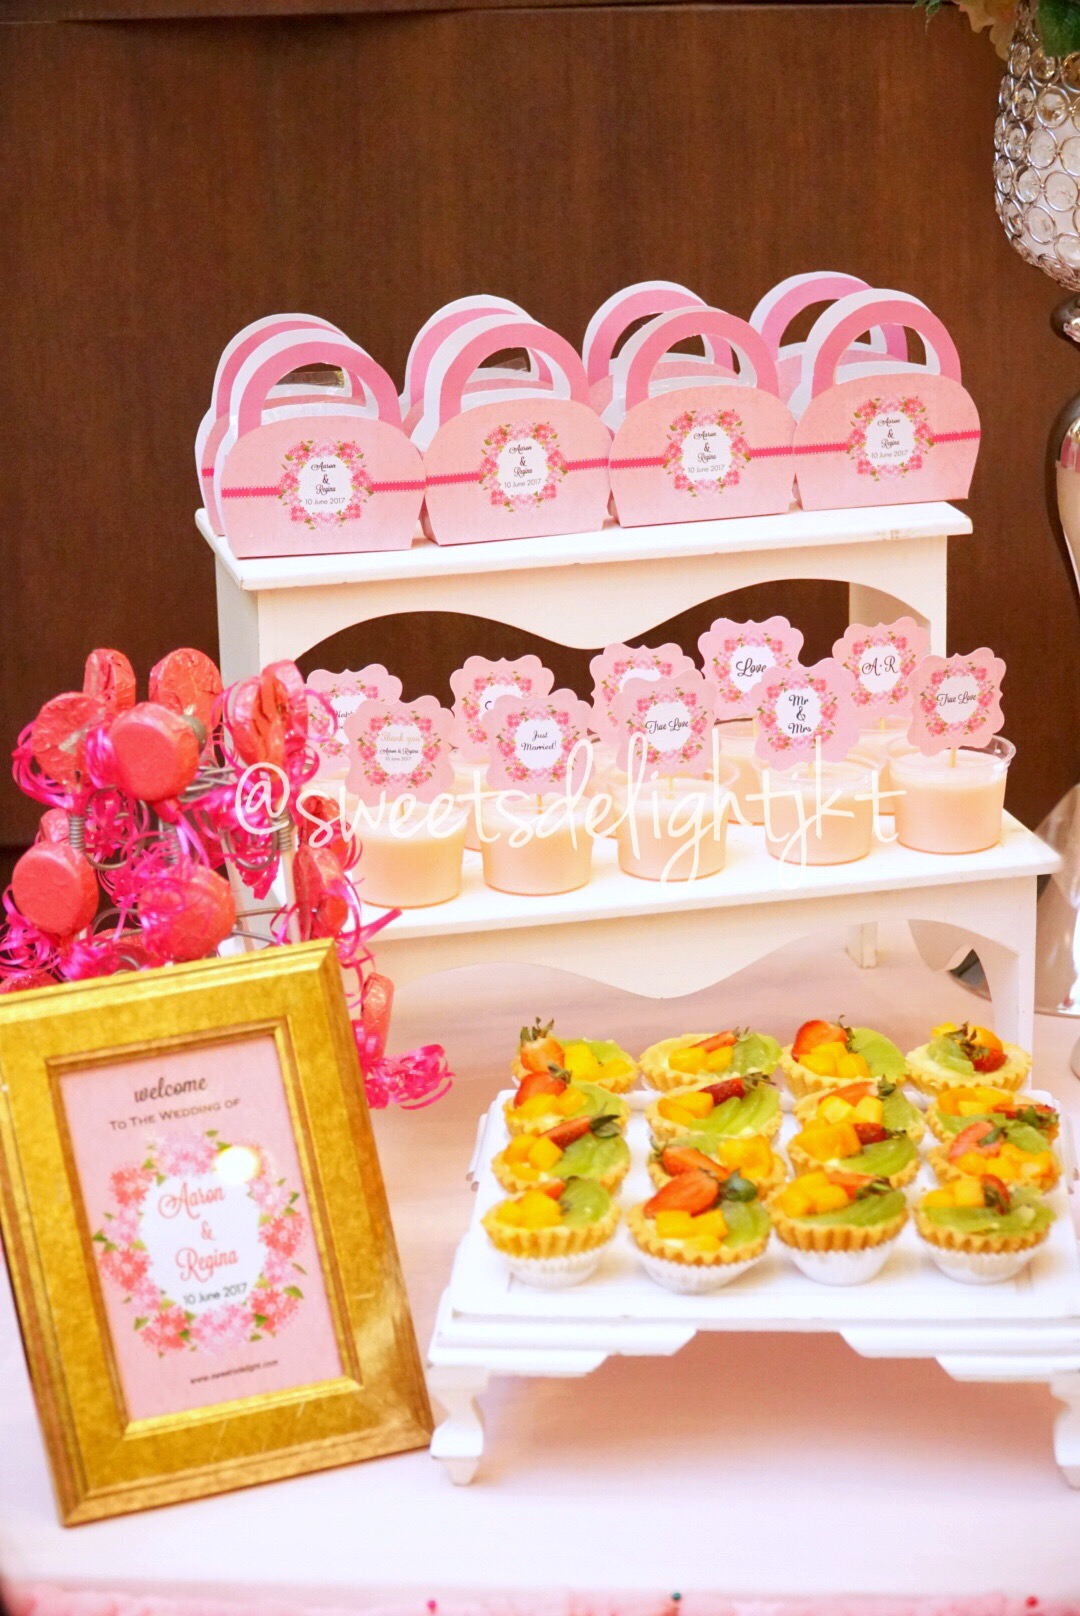 wedding dessert table – Sweets Delight